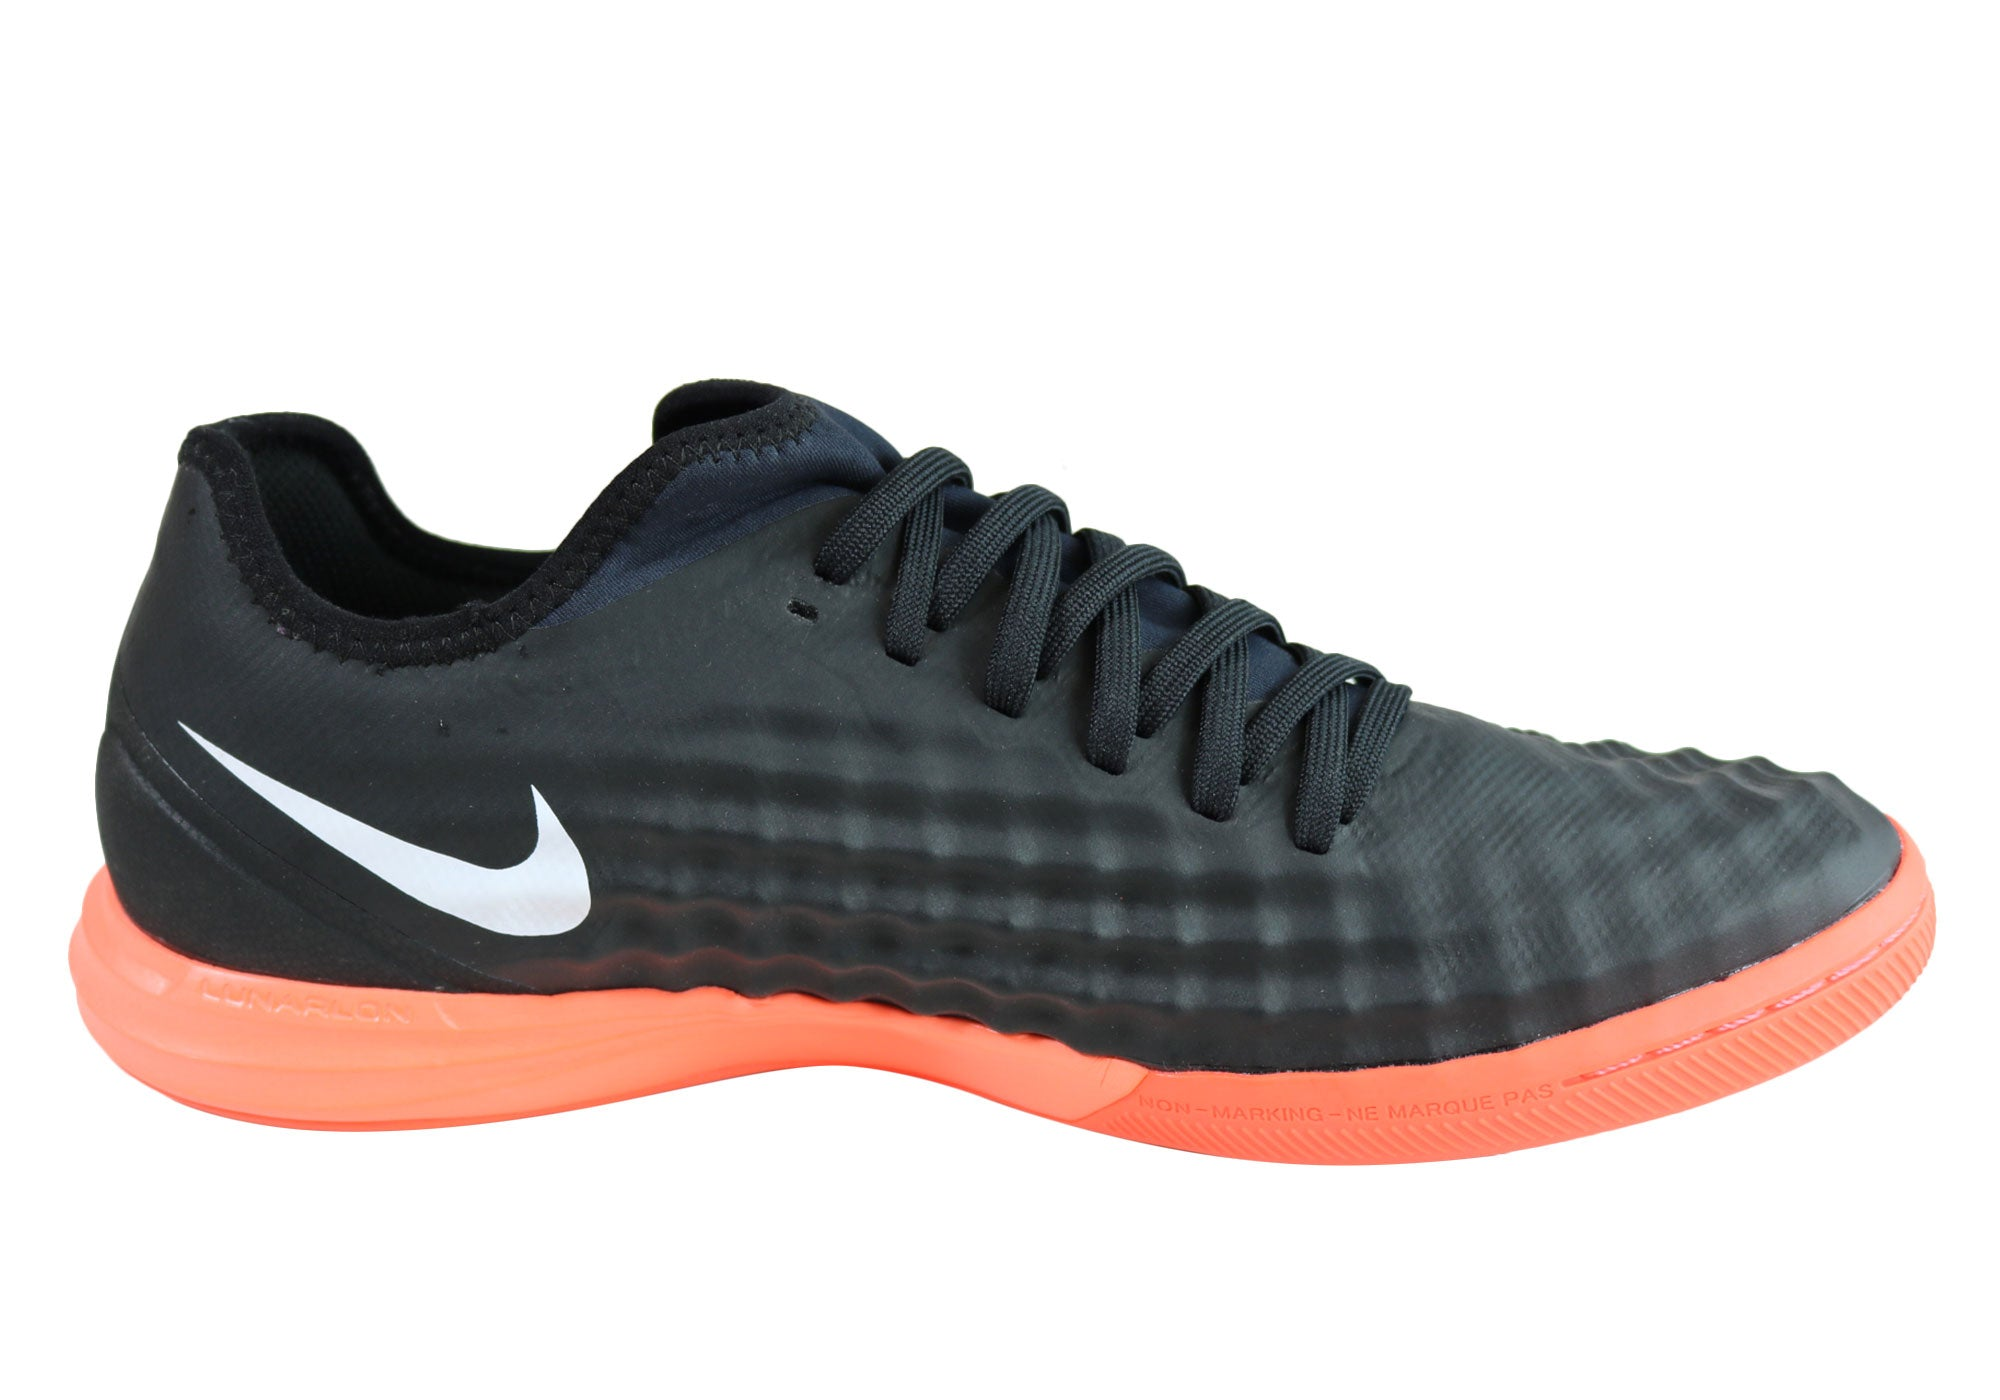 dfef4ee71 Nike Mens Magistax Finale II Ic Indoor Soccer Shoes | Brand House Direct